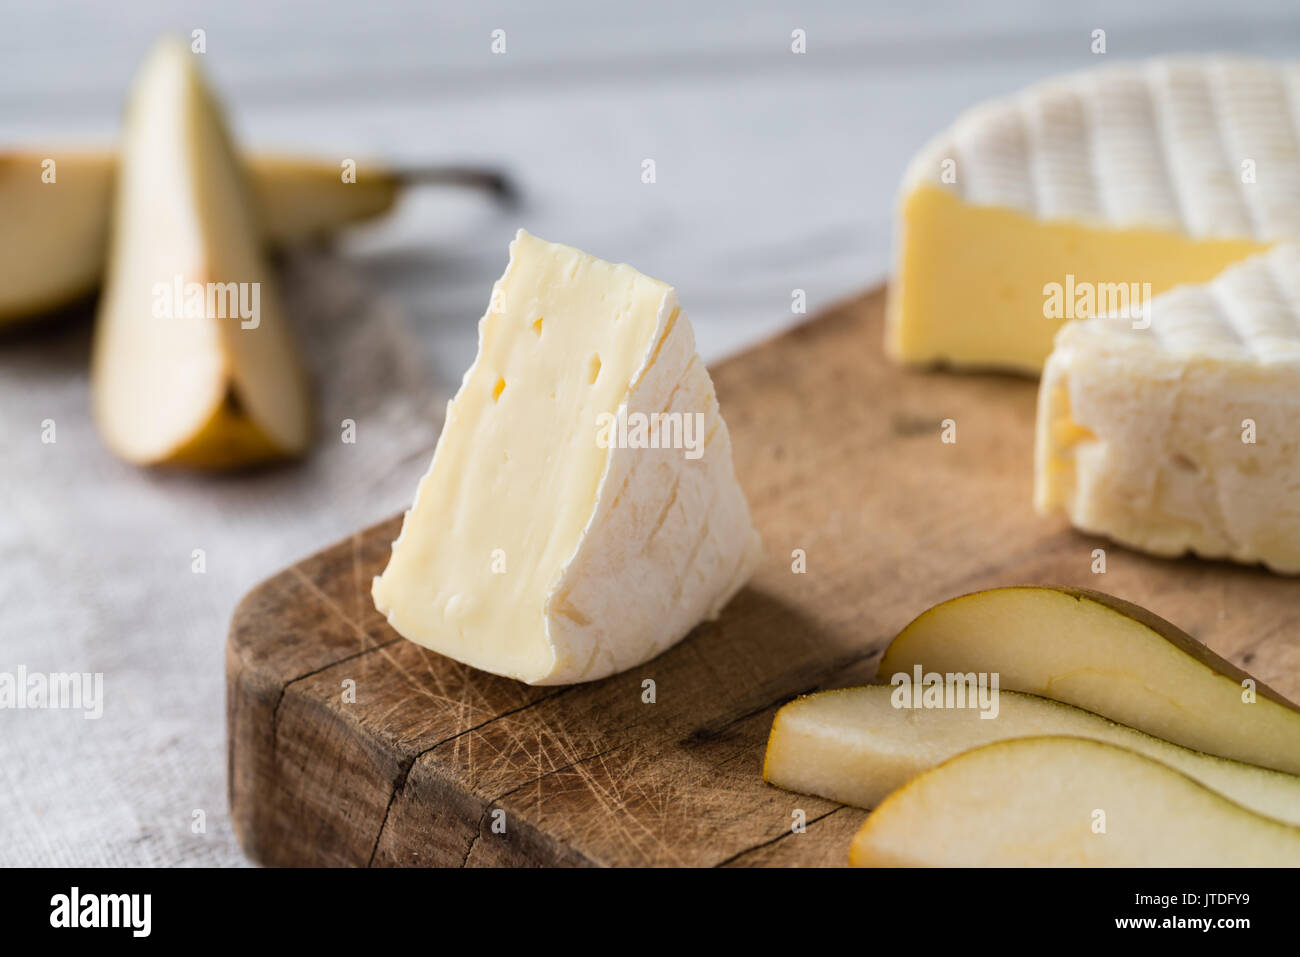 Closeup of French soft cheese from Normandy region sliced with pear on a wooden board on white background - Stock Image